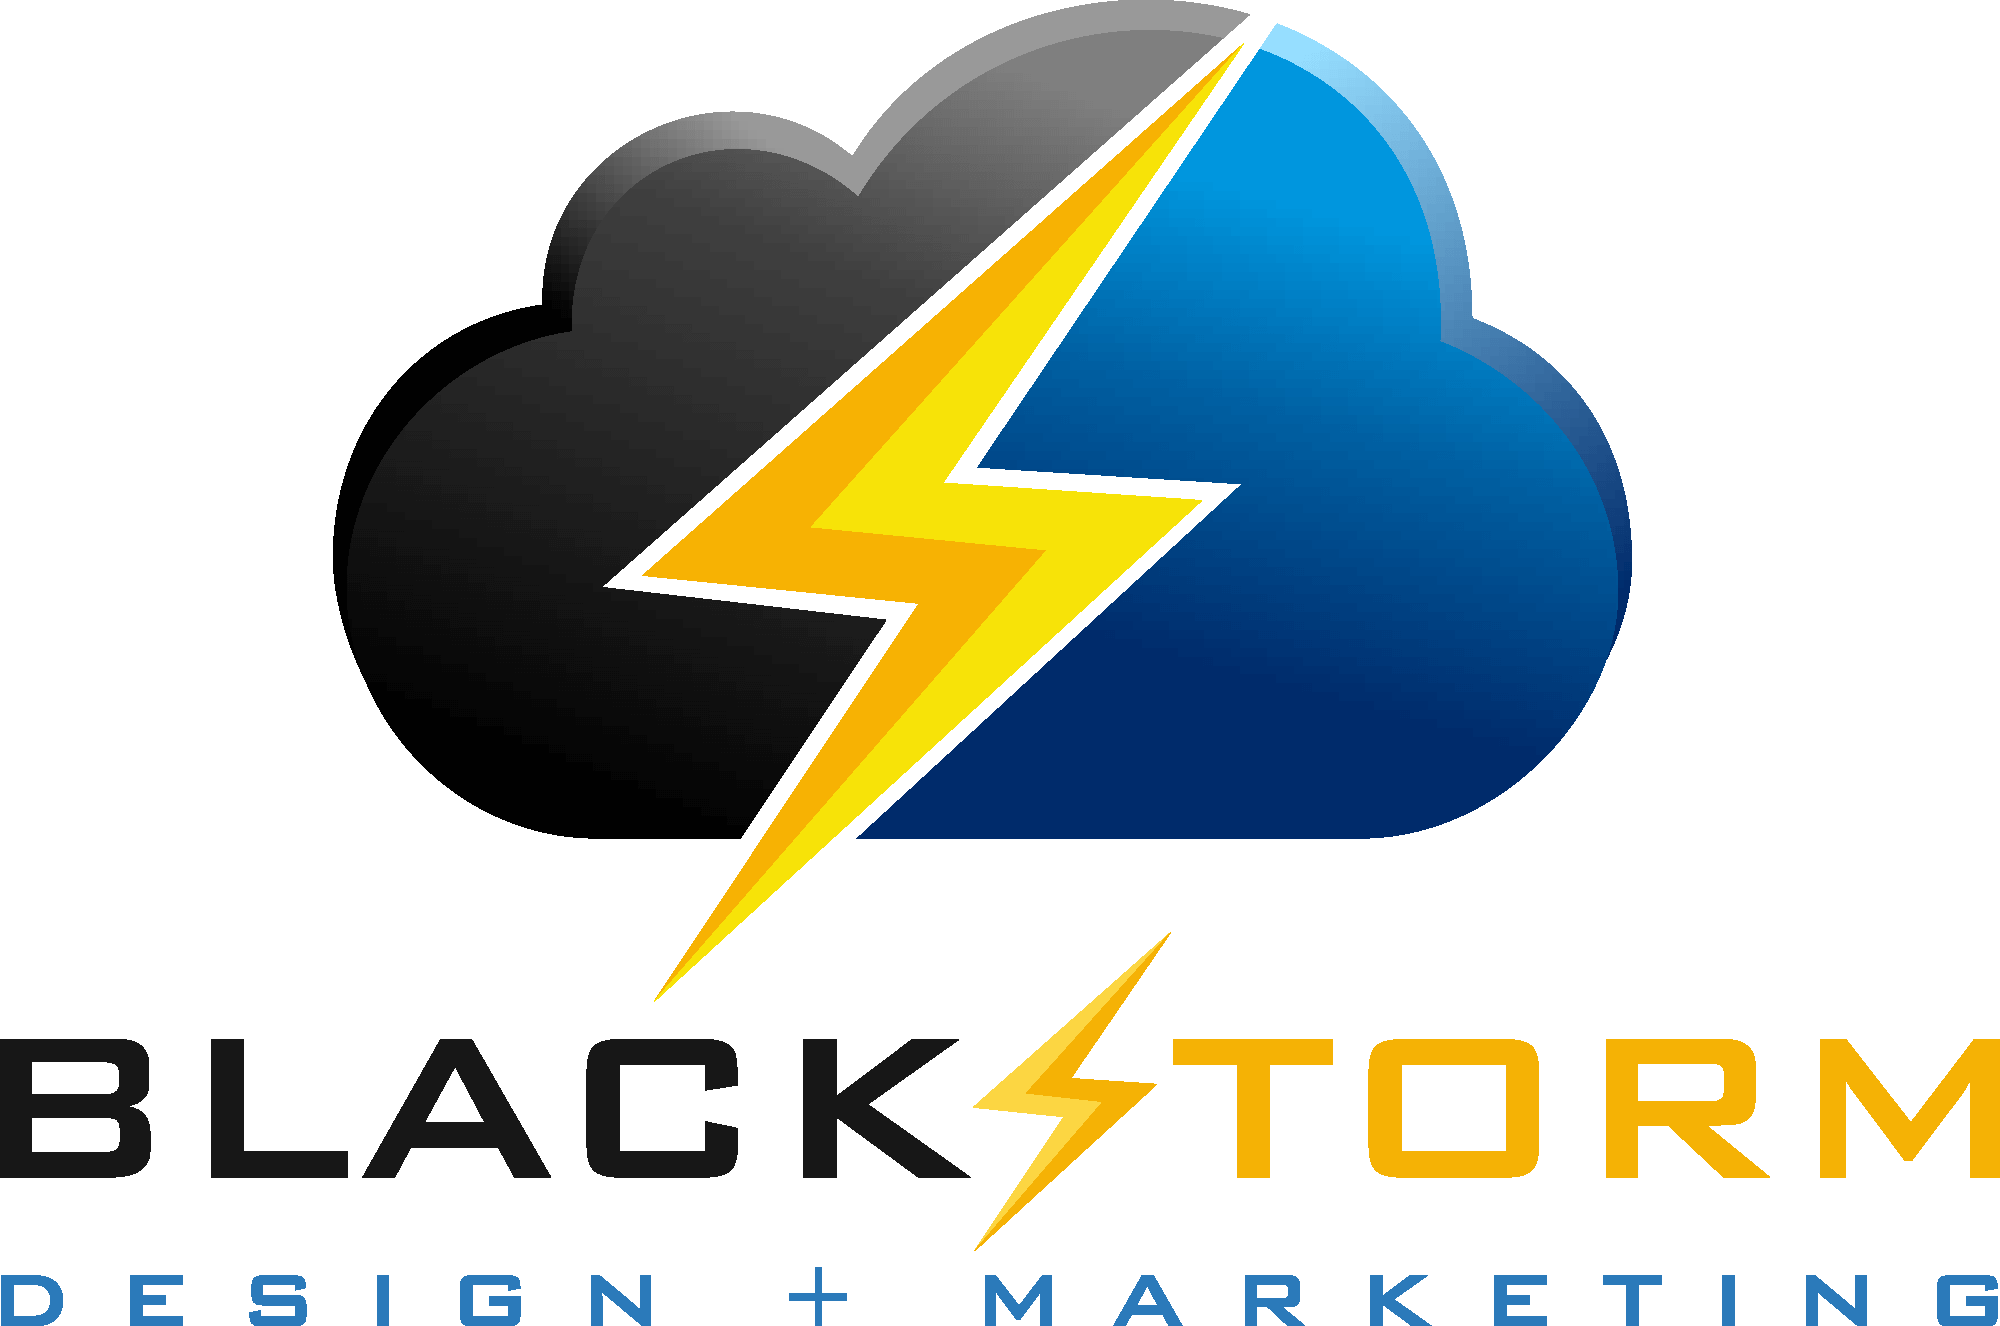 BlackStorm, Marketing Agency Announces Partnership with New Client